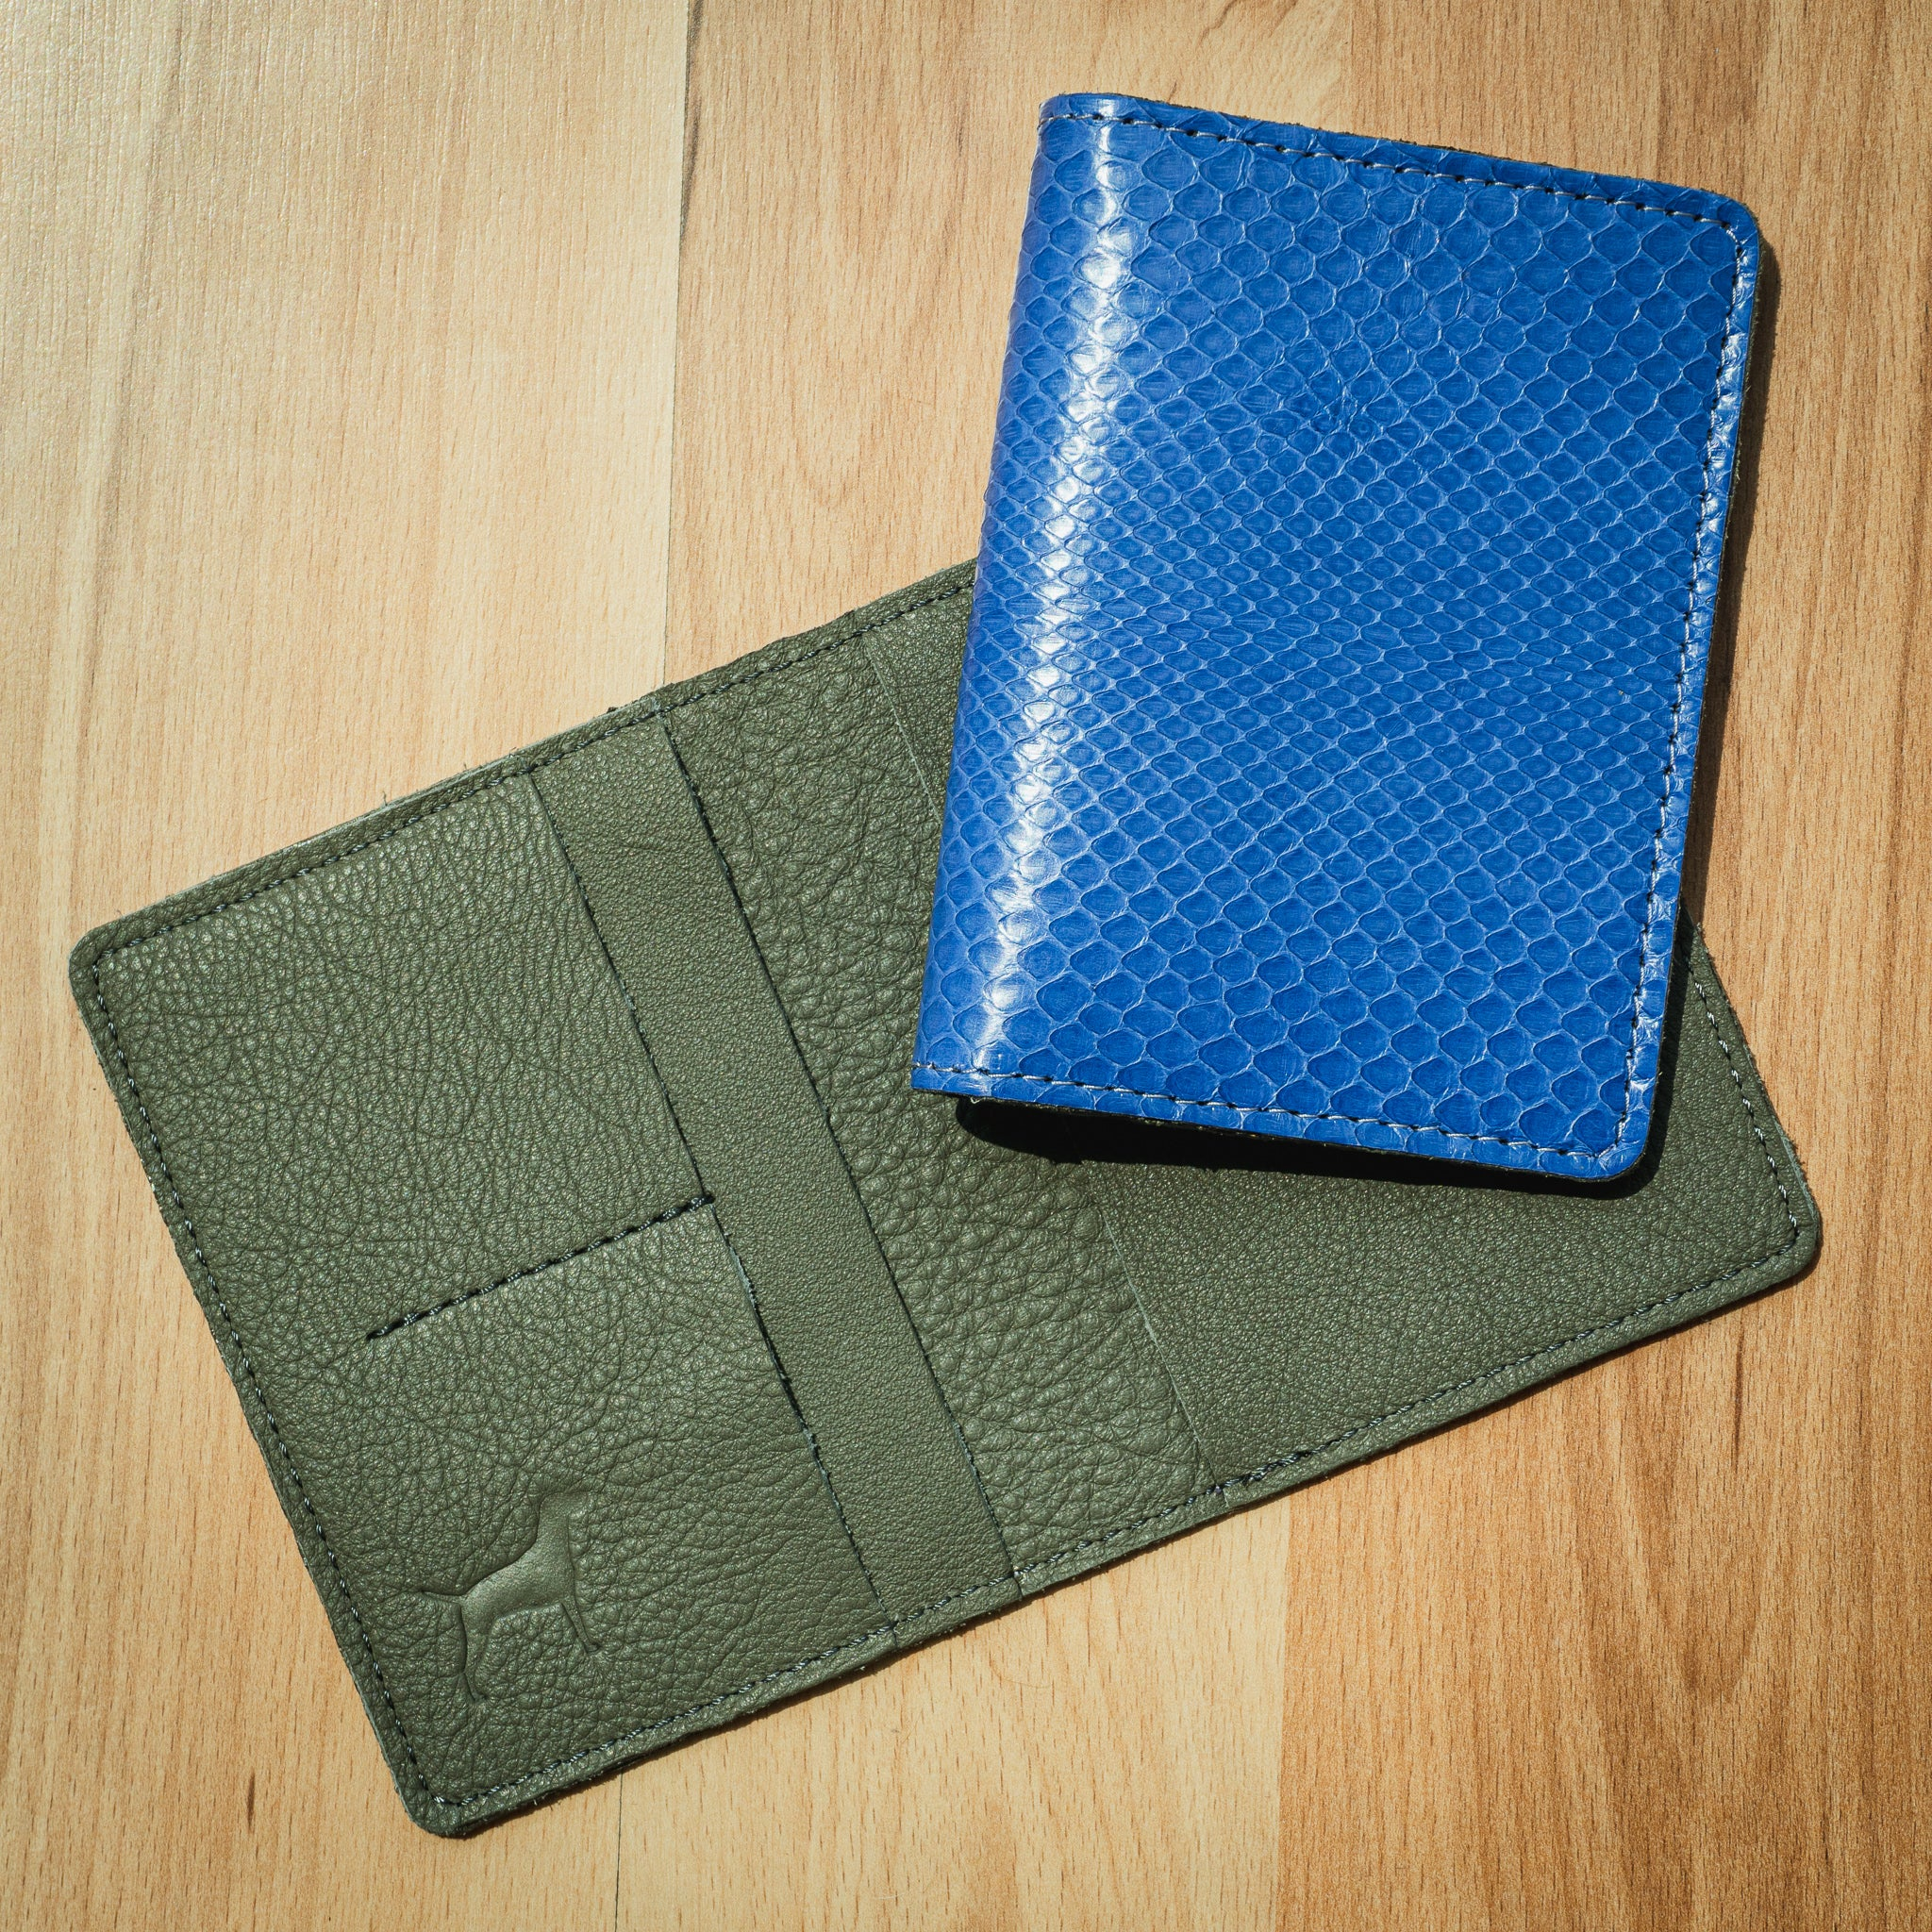 The Glades Python Passport Holder